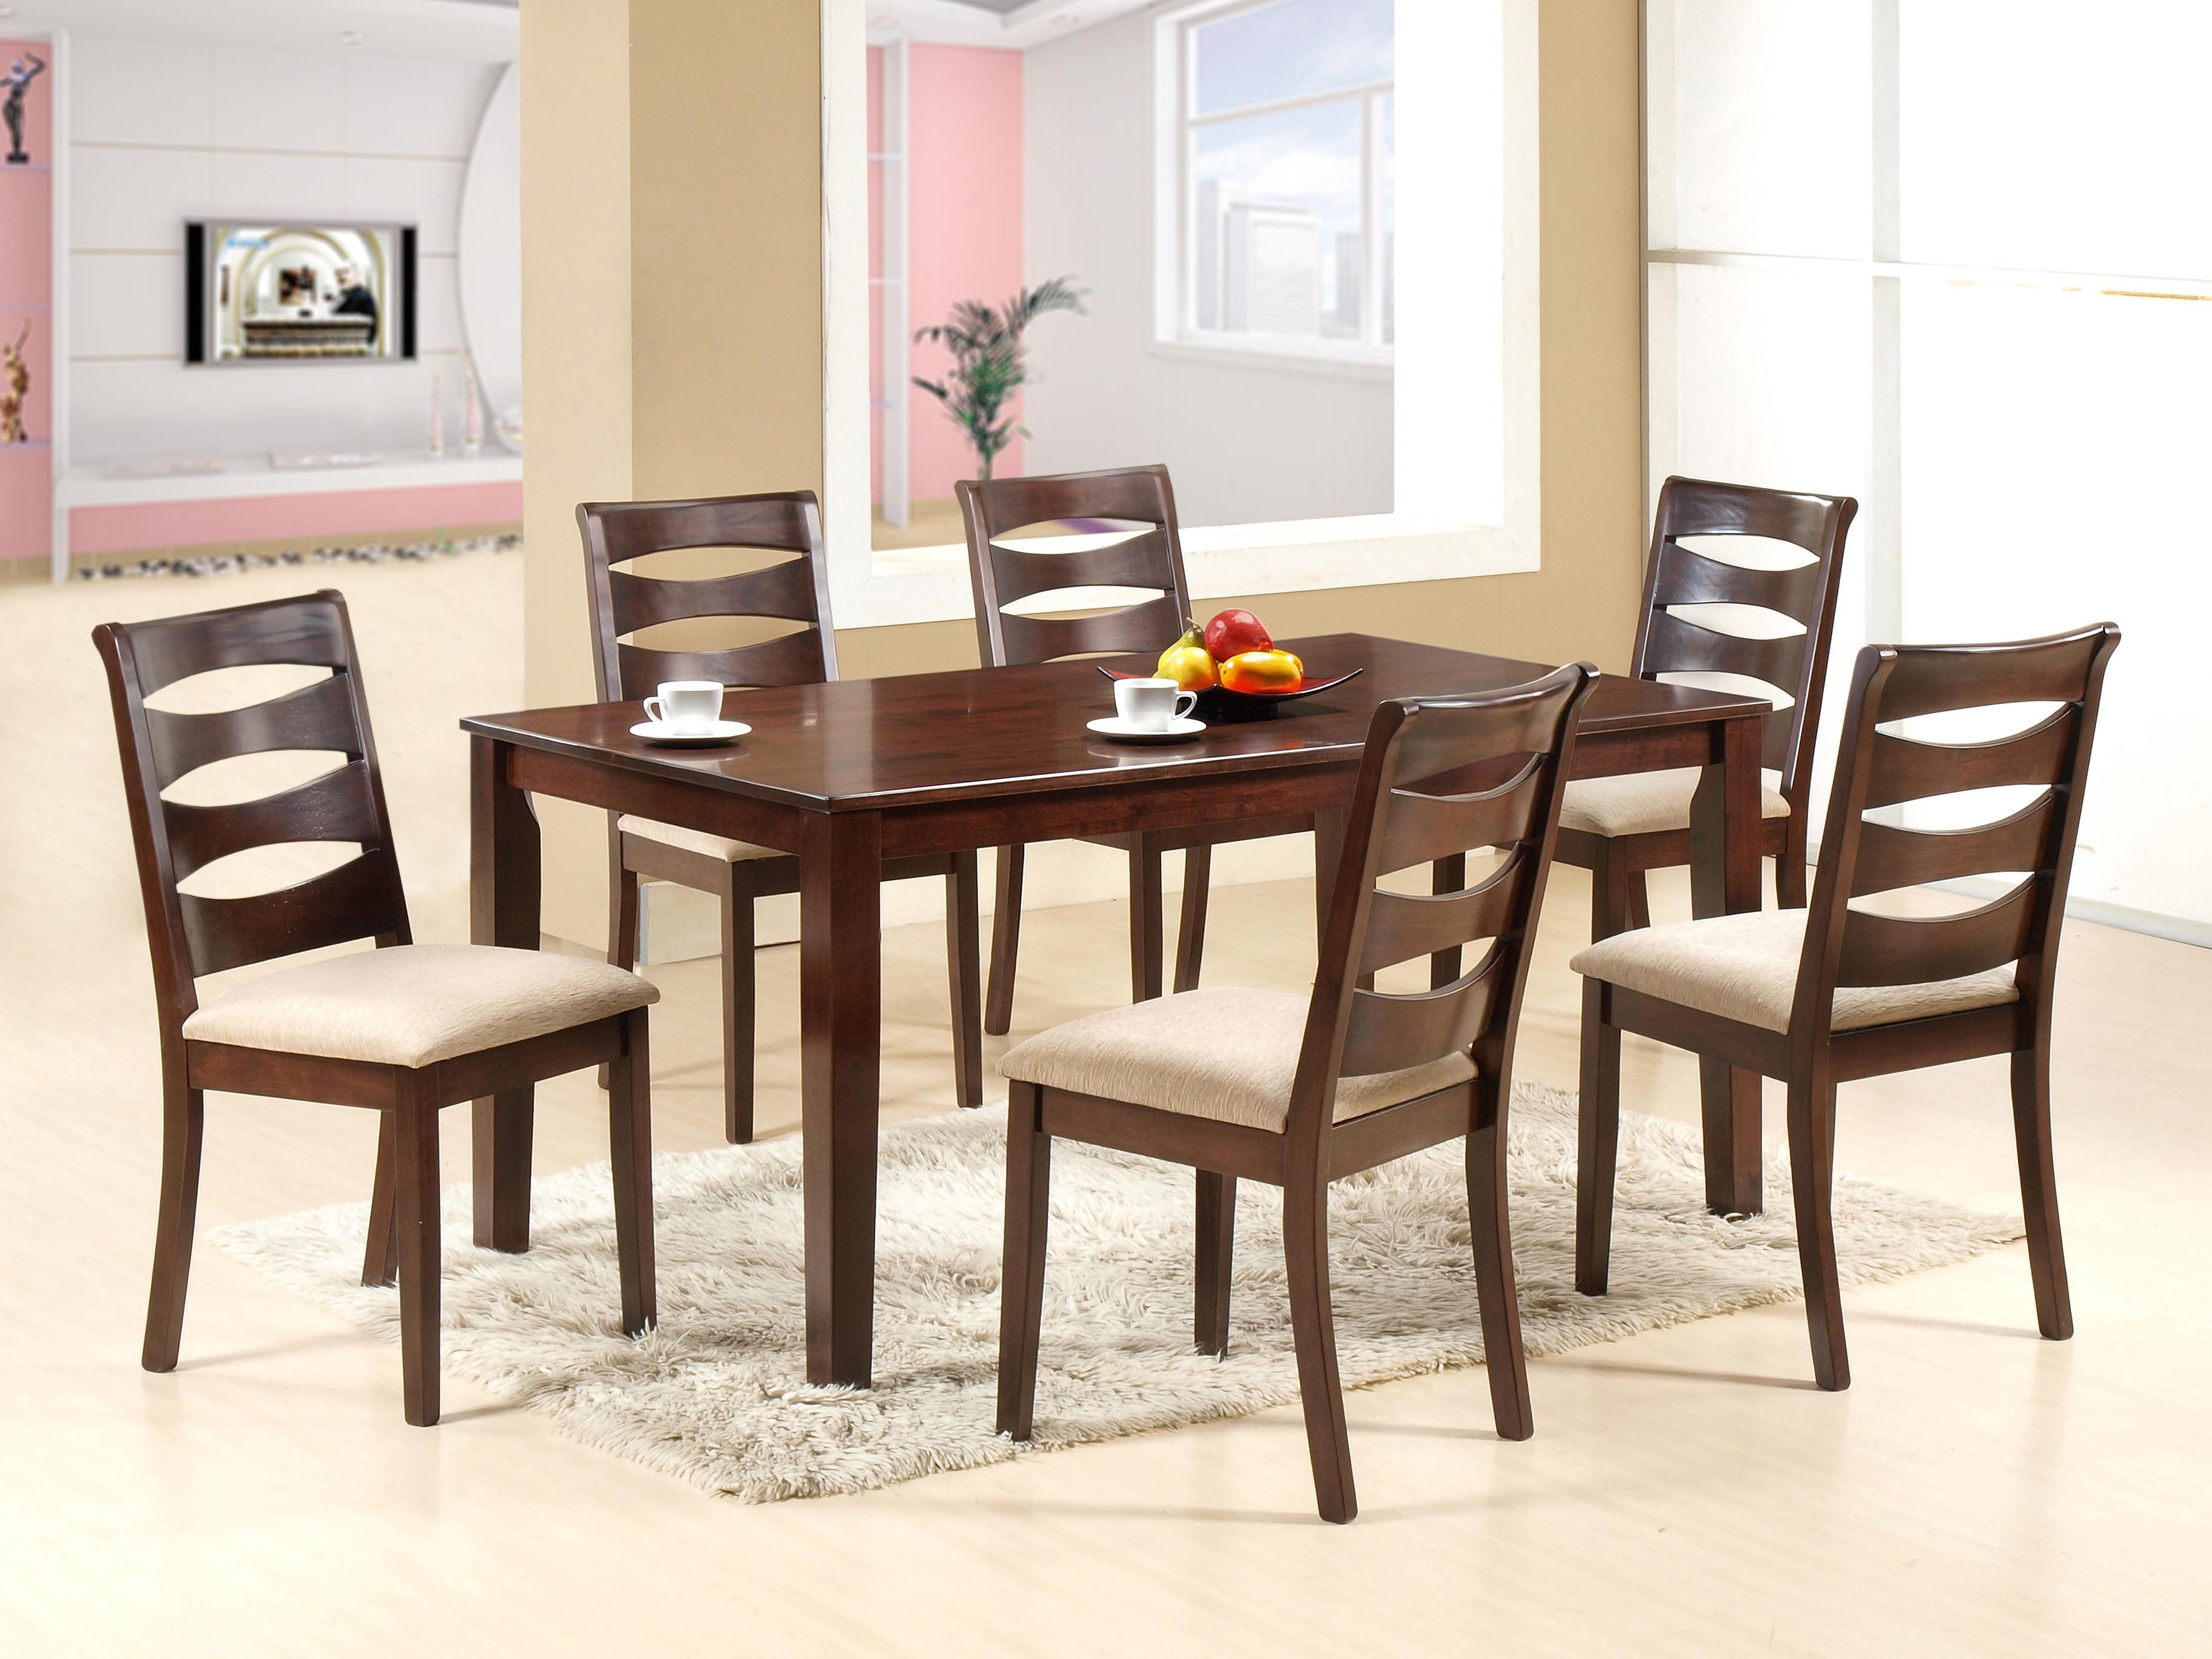 NEW SANDY DINING SET   This Dining Tableu0027s Simple, Sleek Design Enables It  To Perfectly